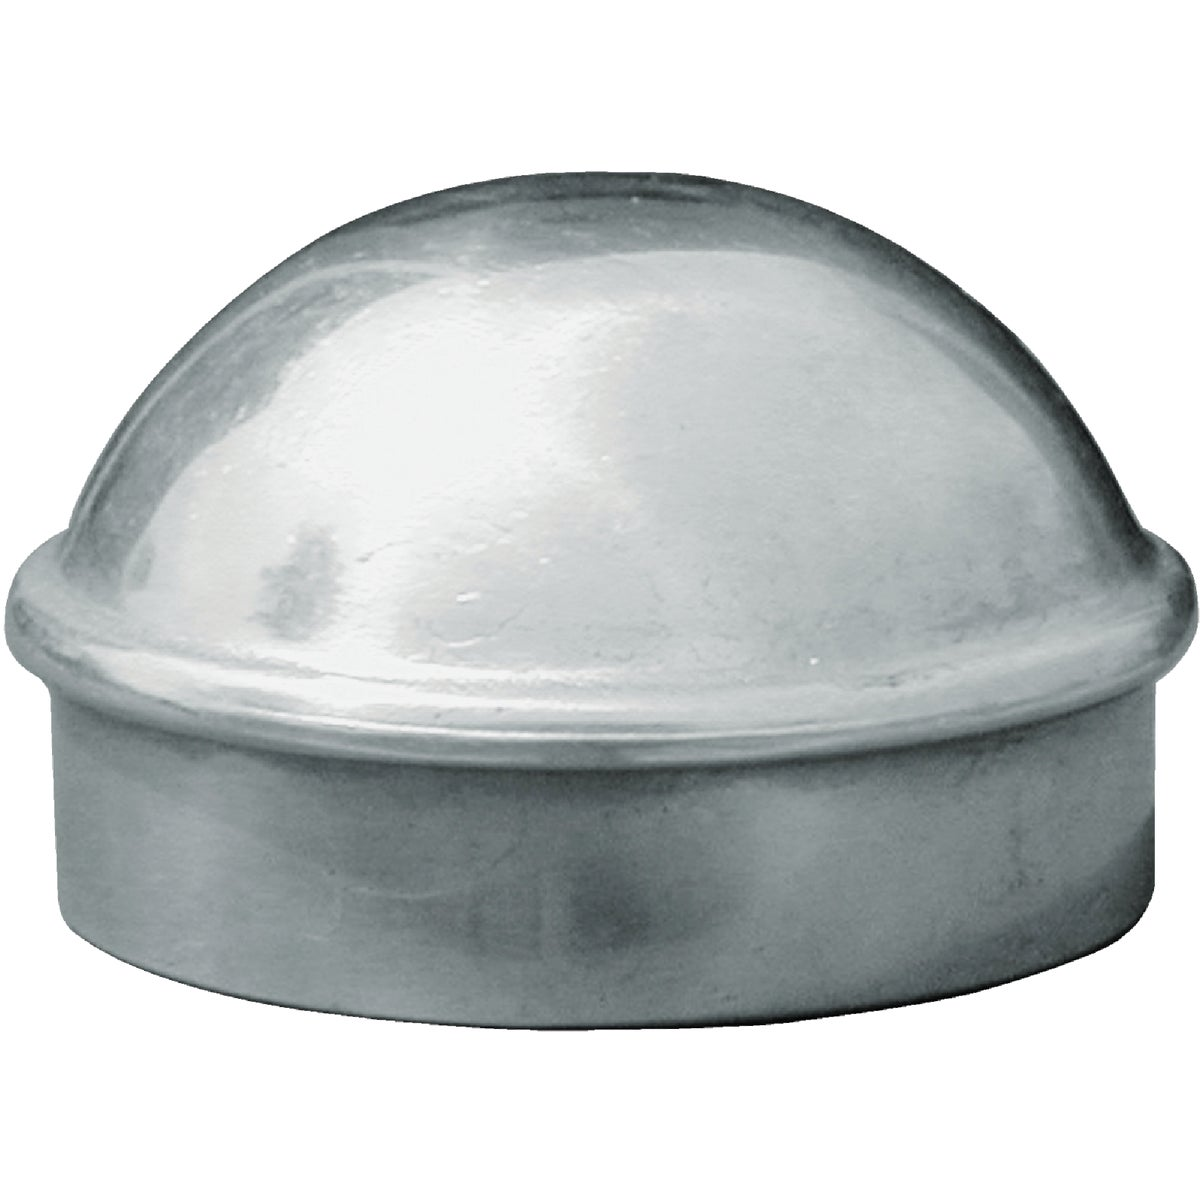 "2-3/8"" POST CAP - 328558C by Midwest Air Tech"